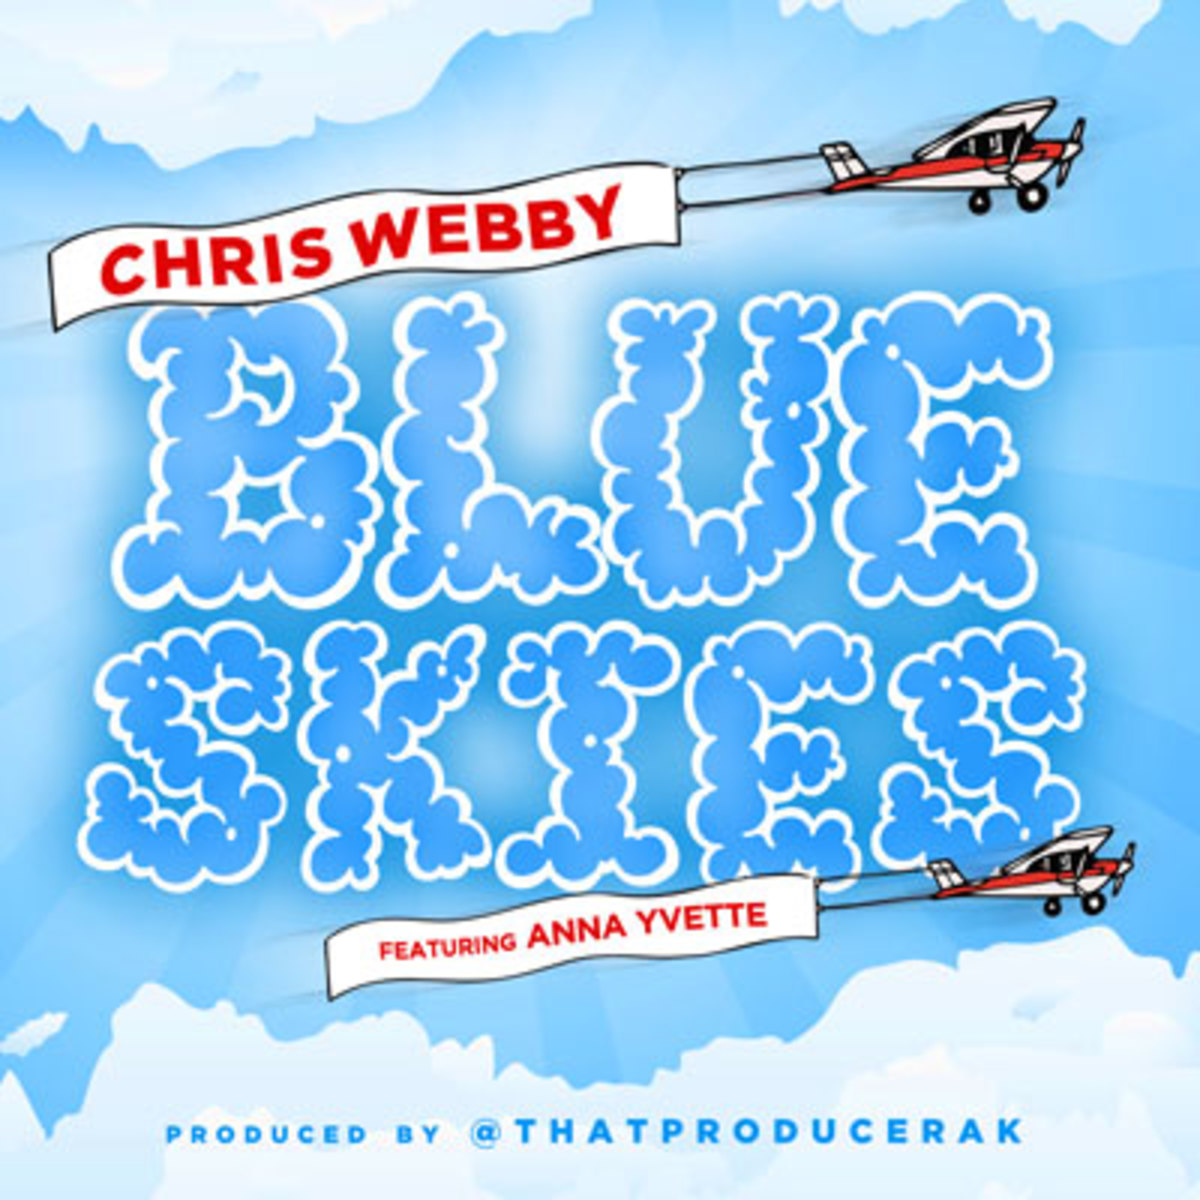 chriswebby-blueskies.jpg